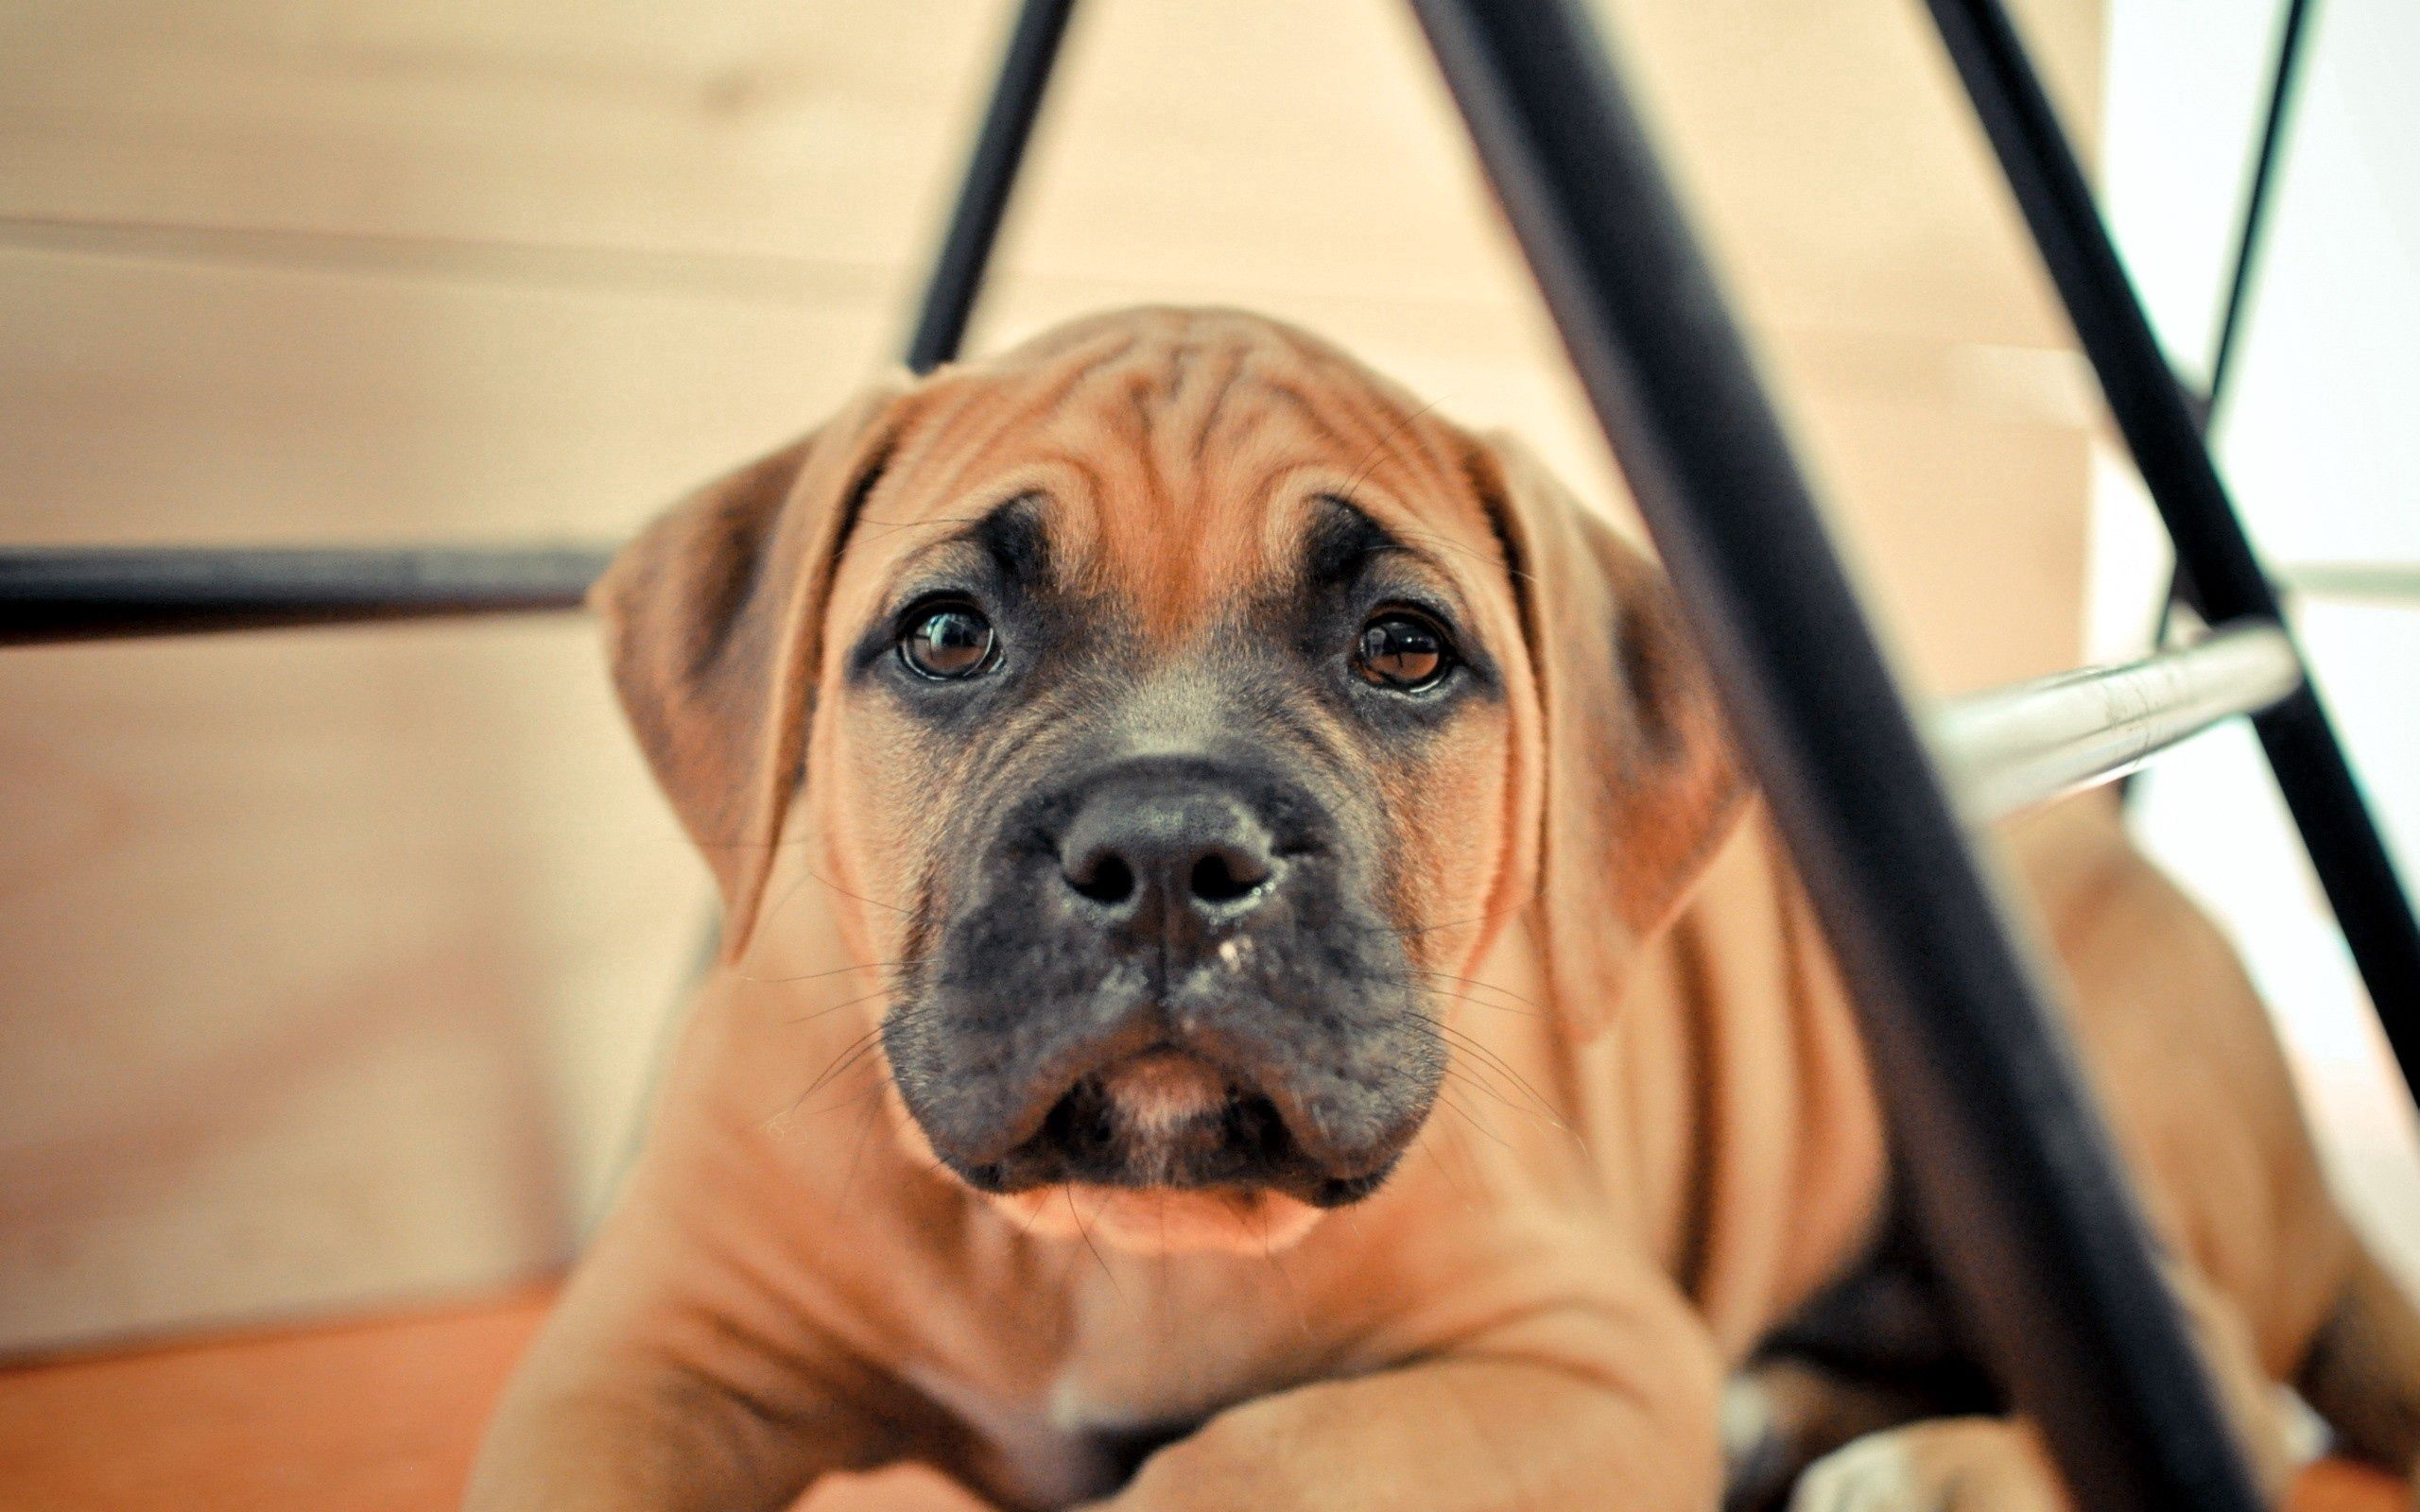 104029 Screensavers and Wallpapers Puppy for phone. Download Animals, Dog, Muzzle, Puppy, Thoroughbred pictures for free